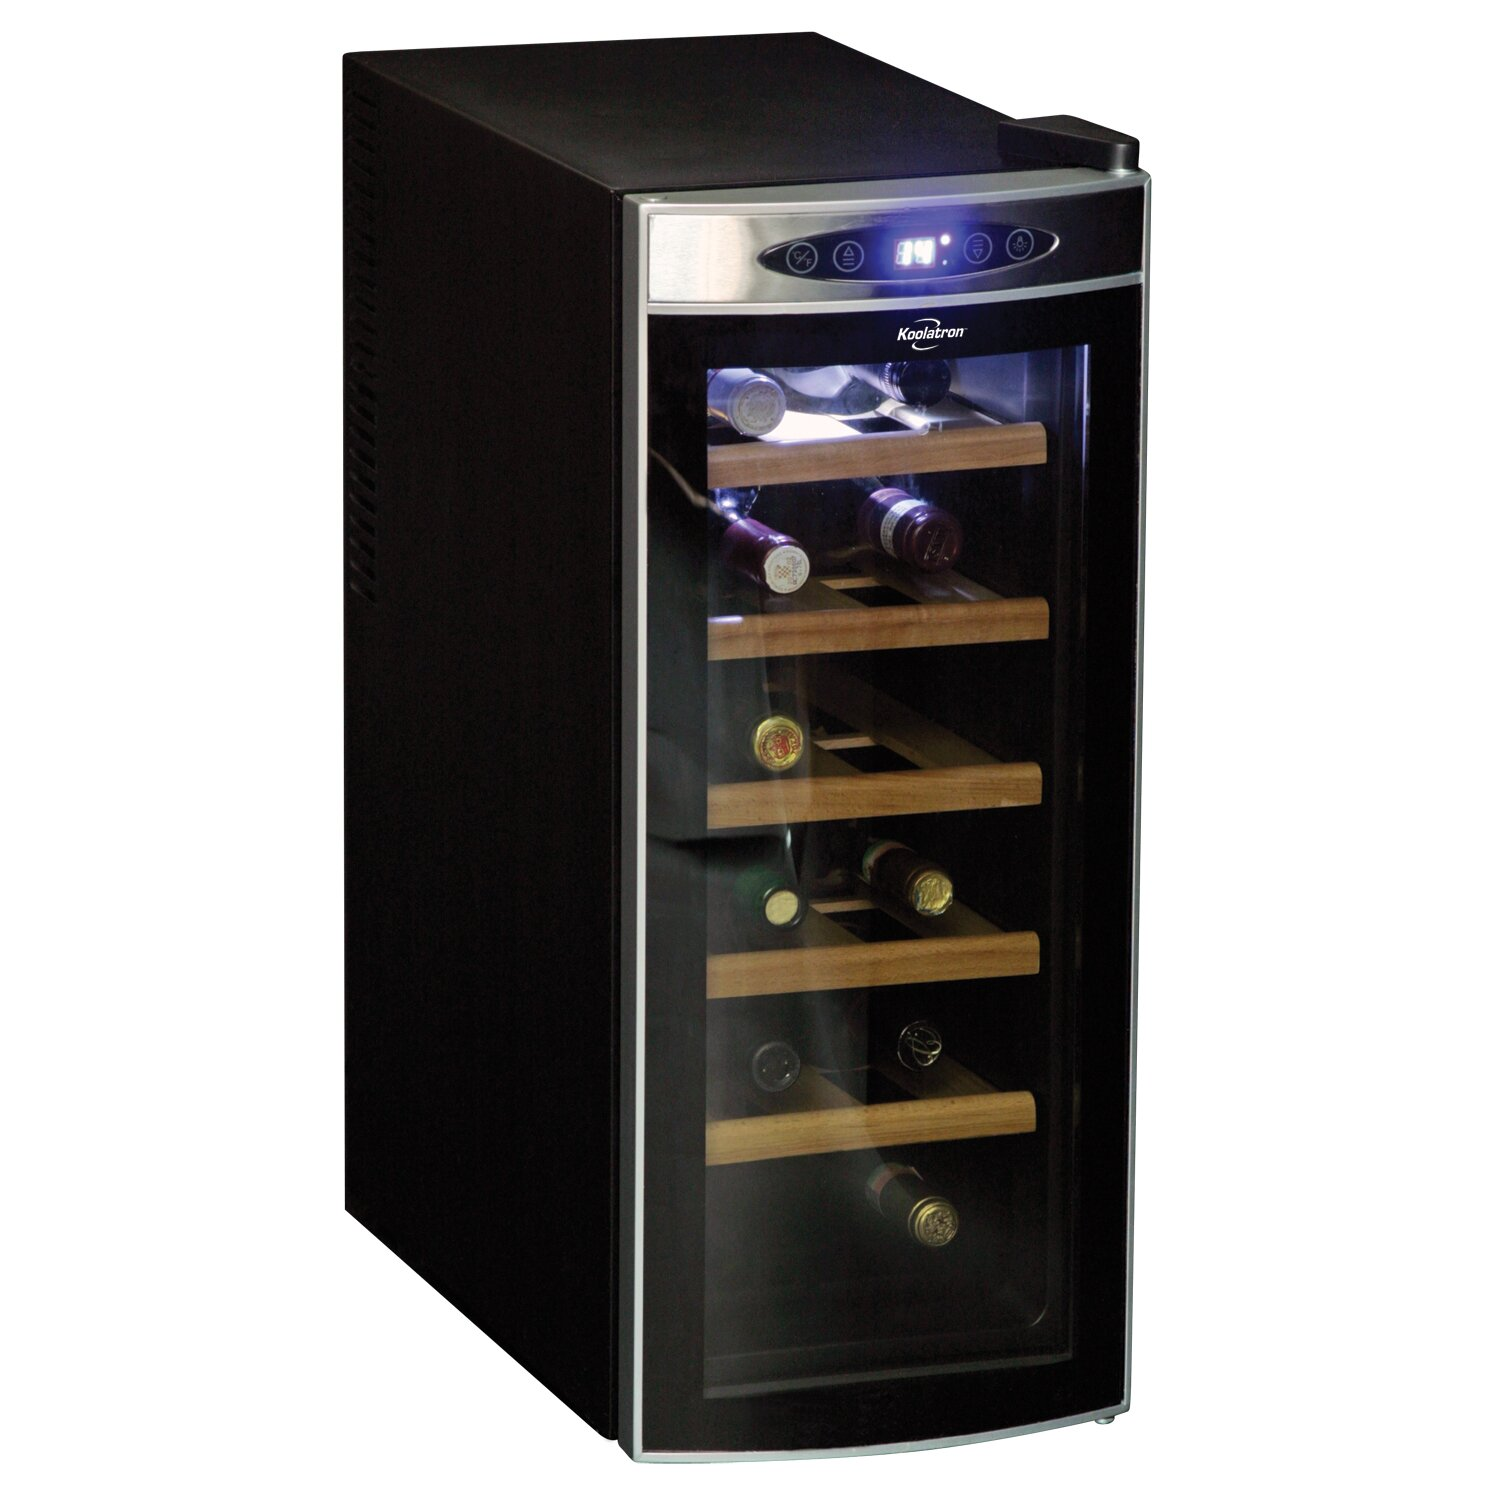 Koolatron Koolatron 12 Bottle Single Zone Wine Refrigerator & Reviews | Wayfair